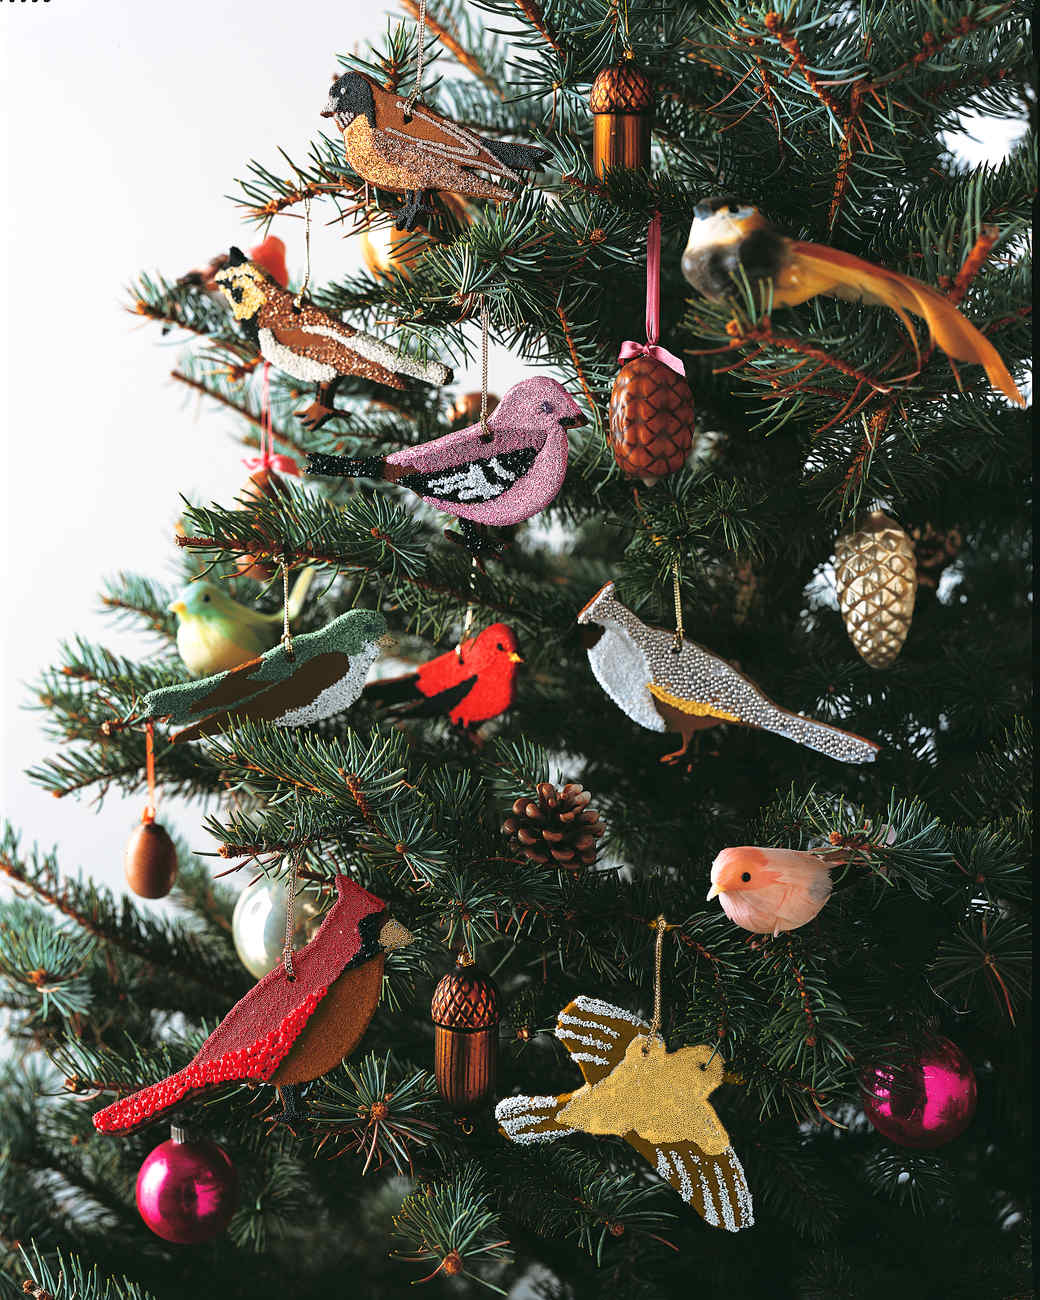 cinnamon bird ornament - Bird Christmas Decorations